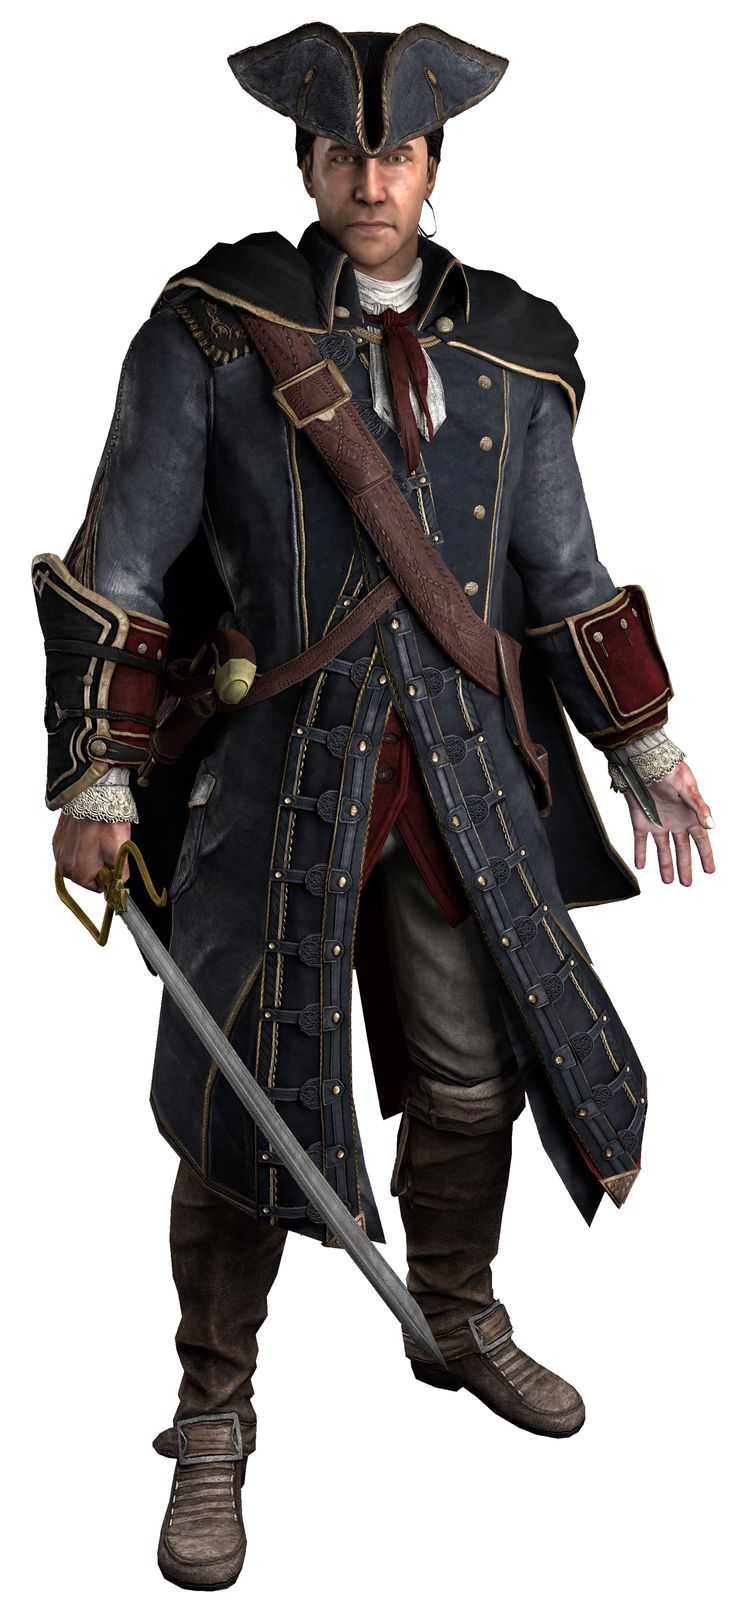 Haytham Kenway Assassin's Creed III and Assassin's Creed: Rogue